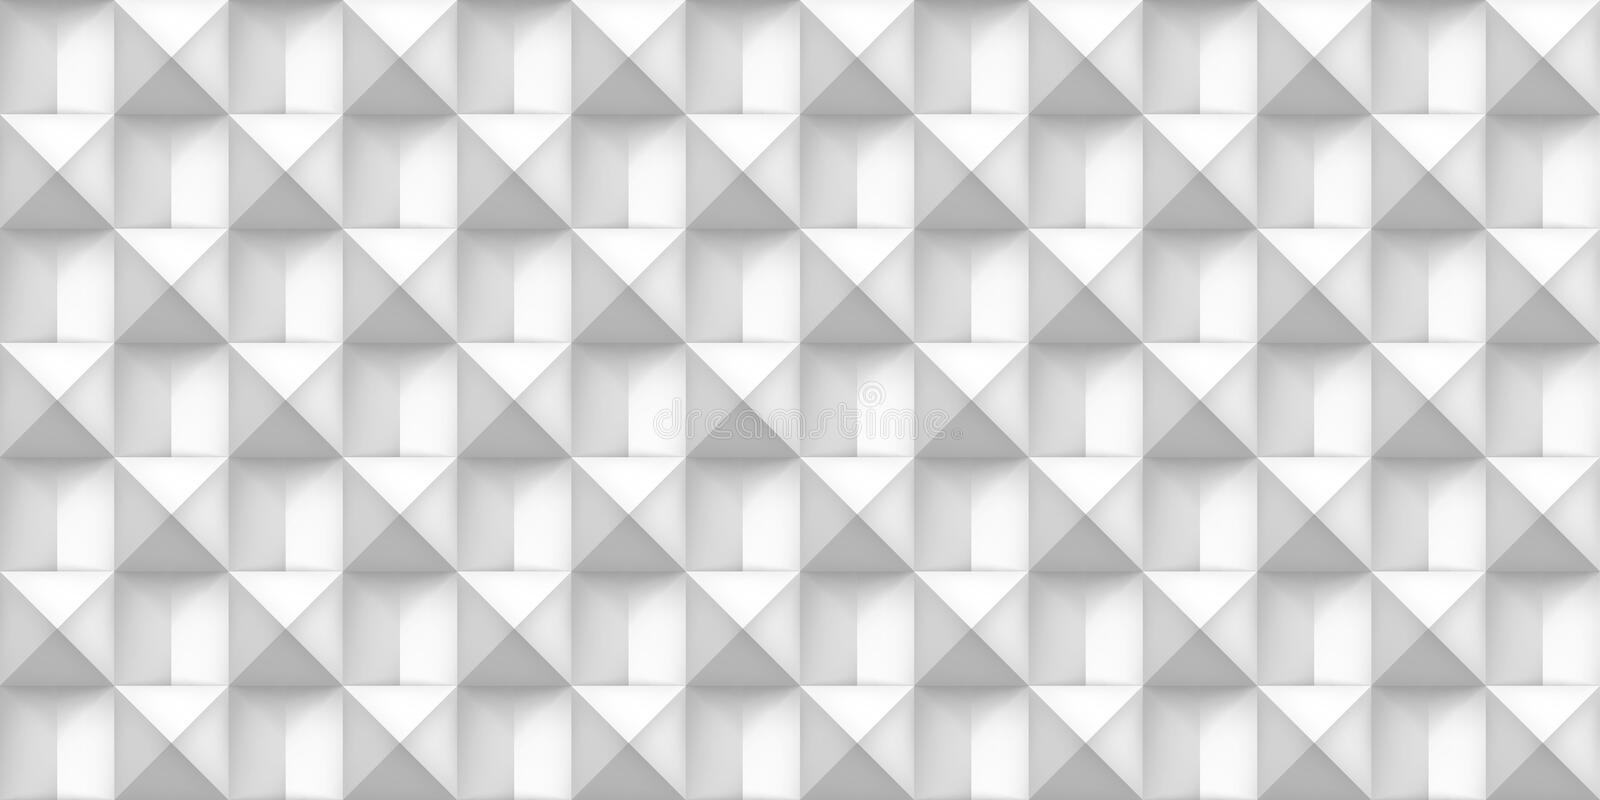 Volume white realistic texture, cubes, gray 3d geometric seamless pattern, design vector light background vector illustration